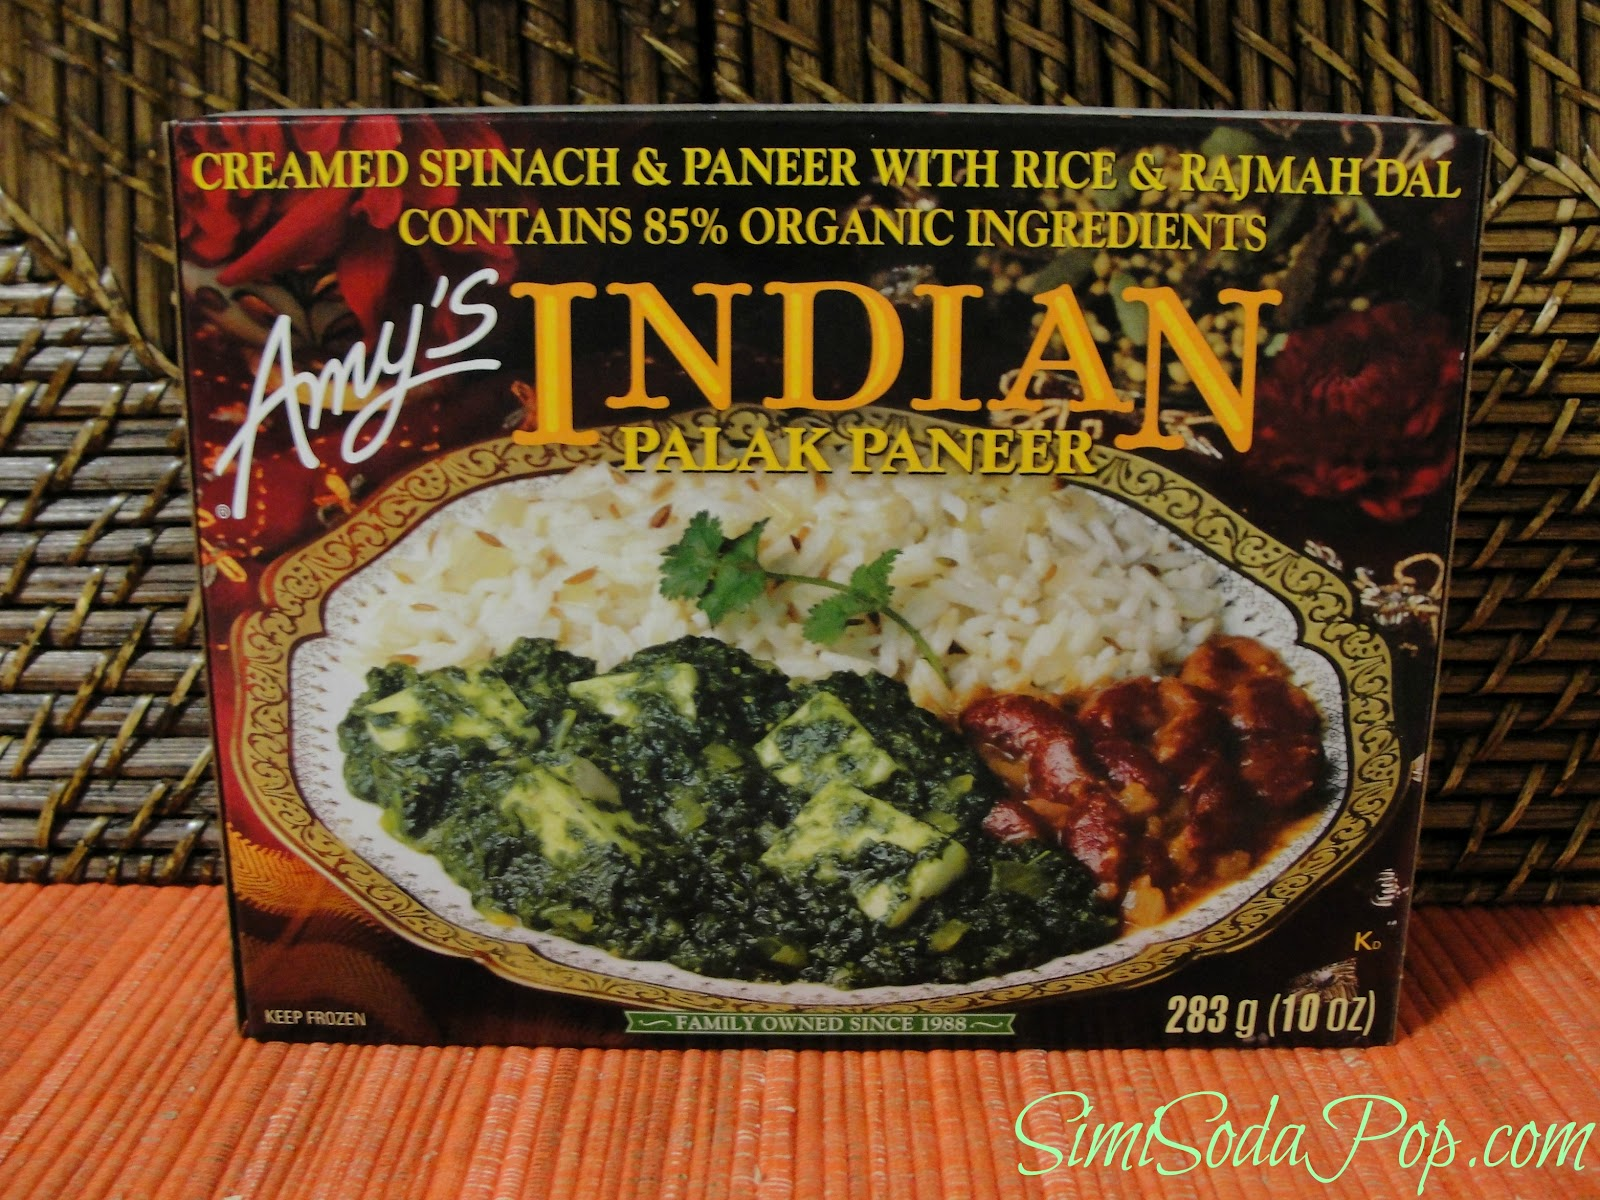 Simisodapop a refreshment of bubbly gossip beauty fashion amys natural and organic foods indian palak paneer forumfinder Gallery